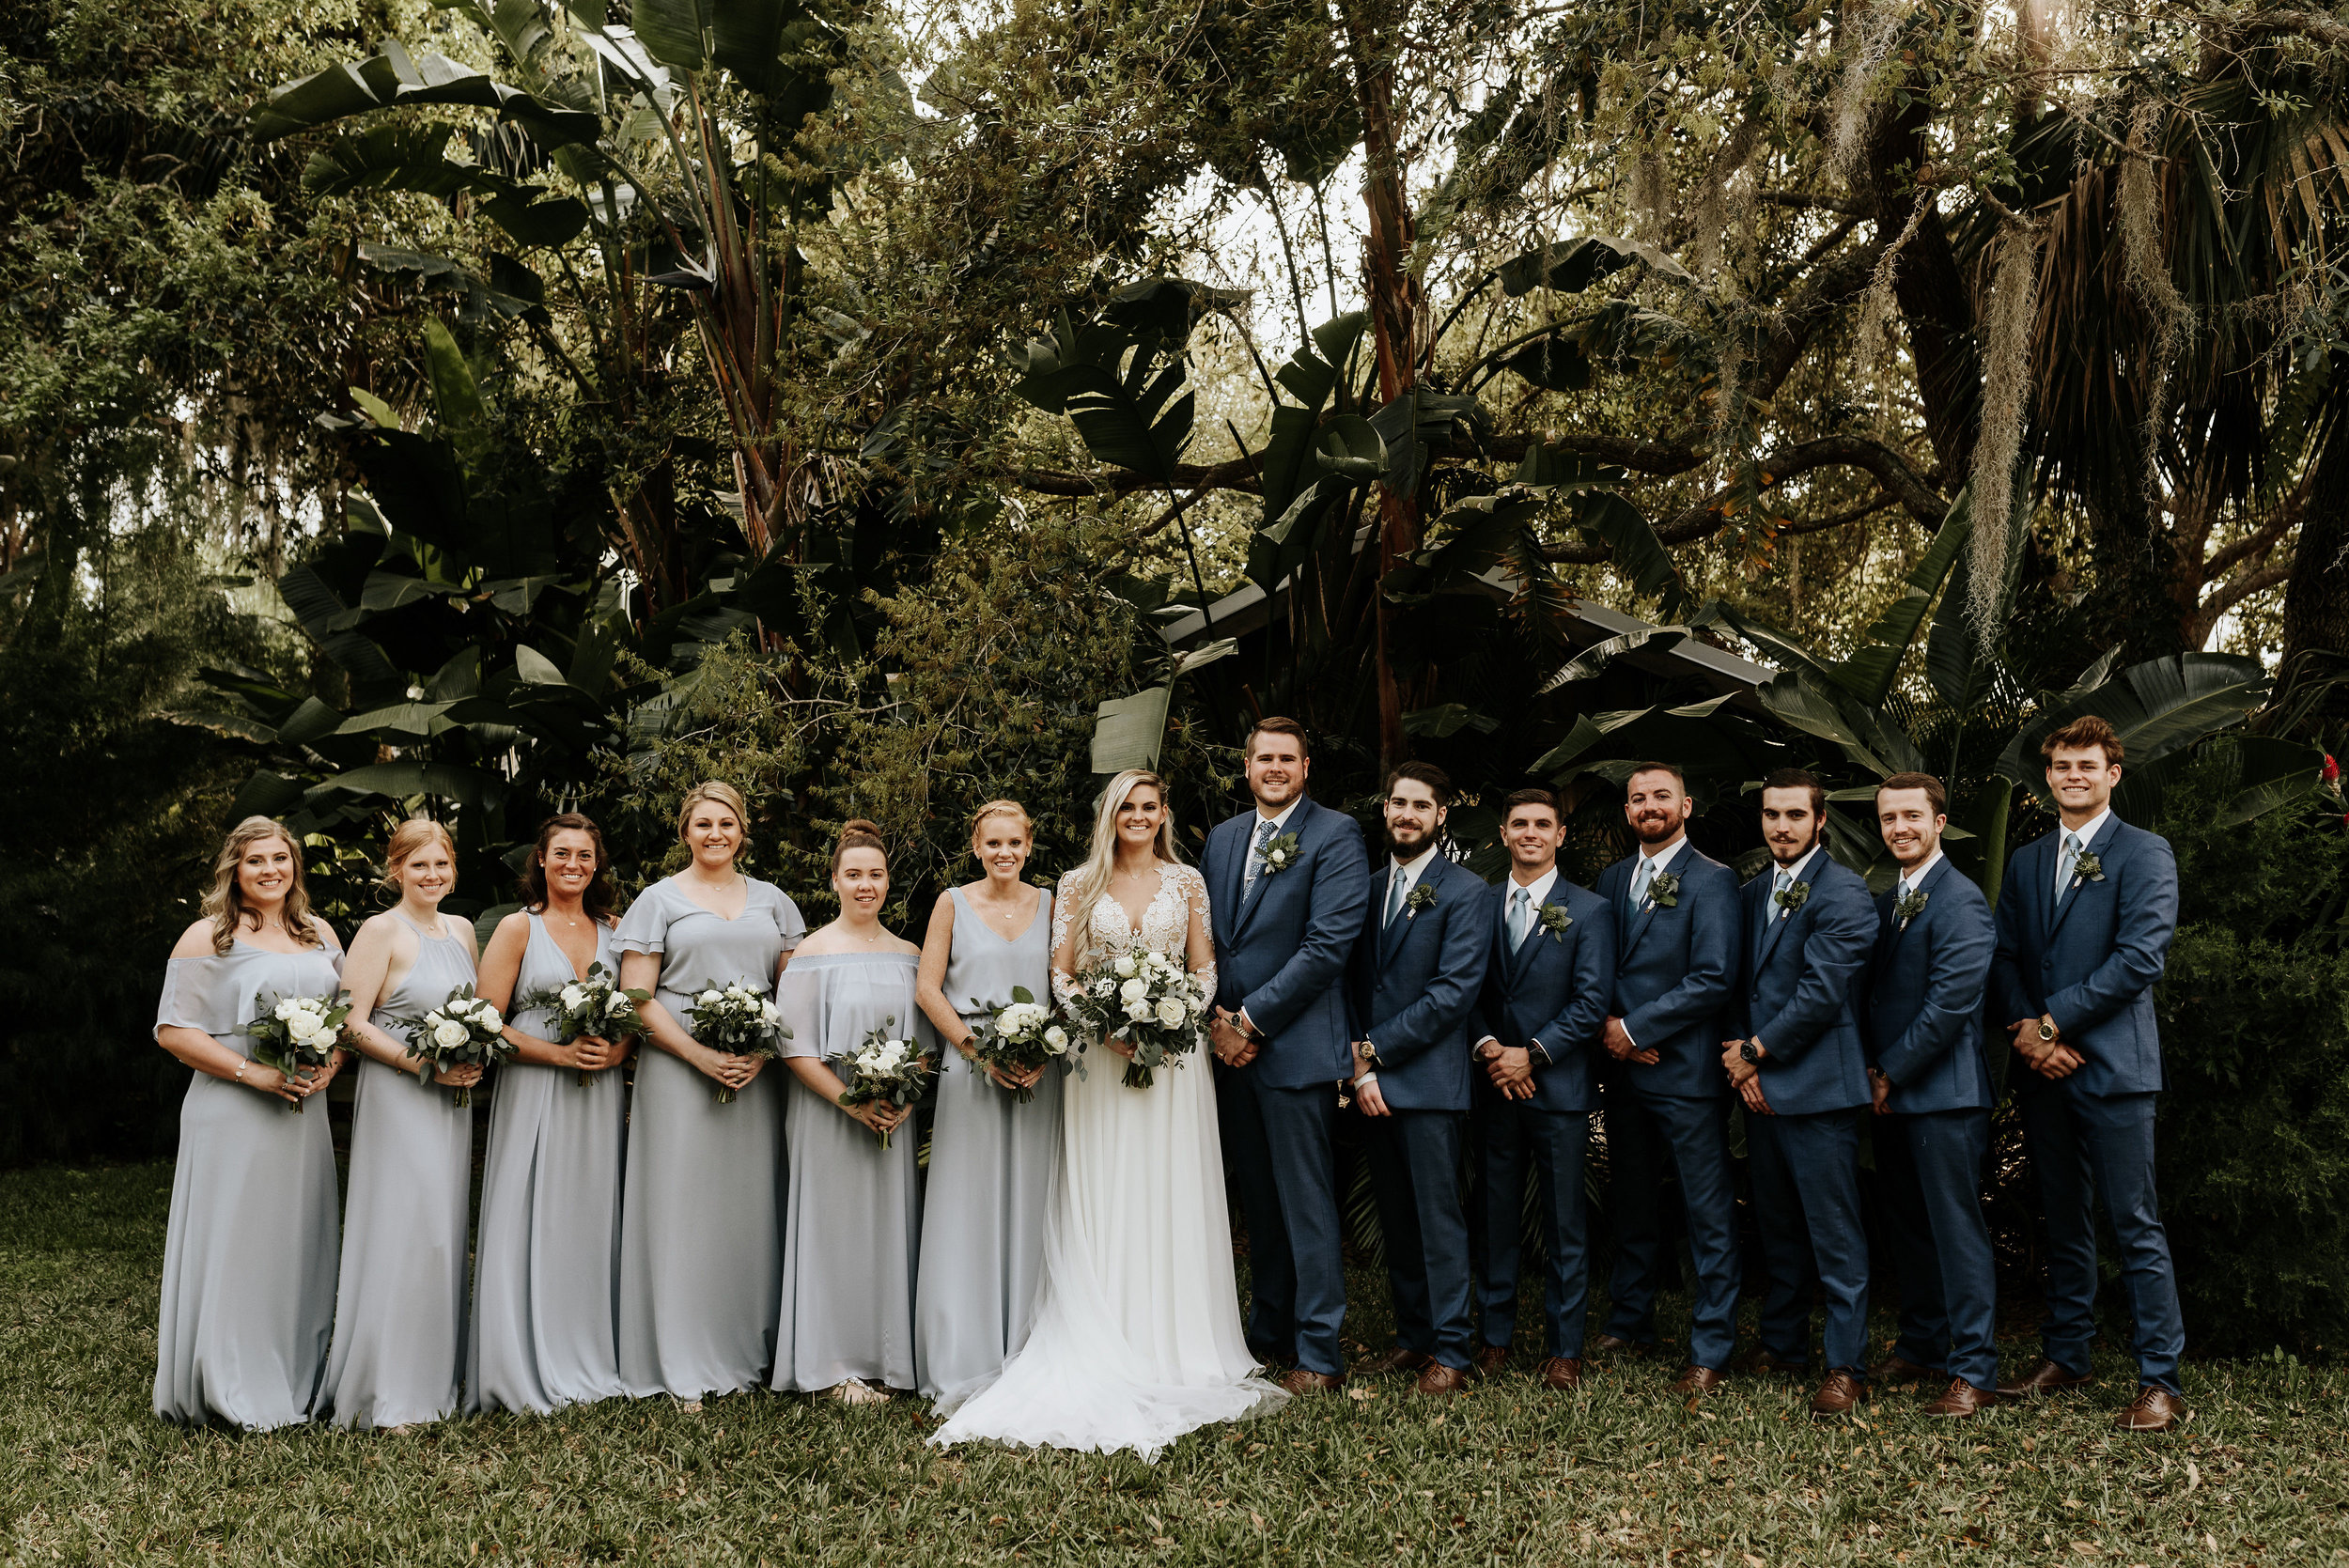 Mikenzi_Brad_Wedding_The_Delamater_House_New_Smyrna_Beach_Florida_Photography_by_V_0461.jpg